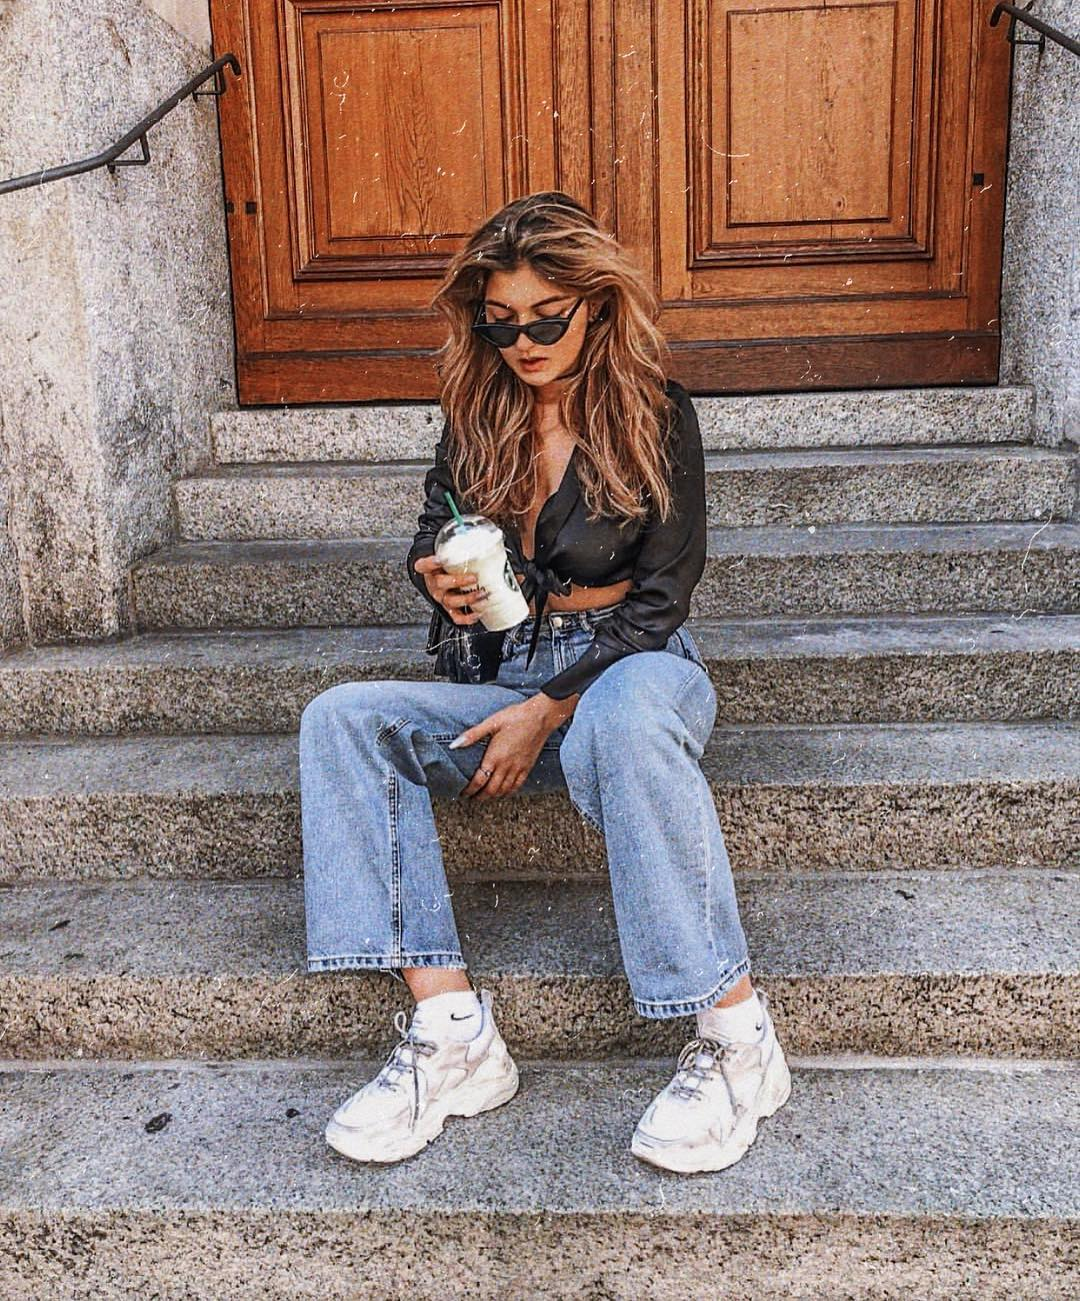 Casual Summer Basics: Silk Black Crop Blouse, Boyfriend Jeans And Chunky Sneakers In White 2020